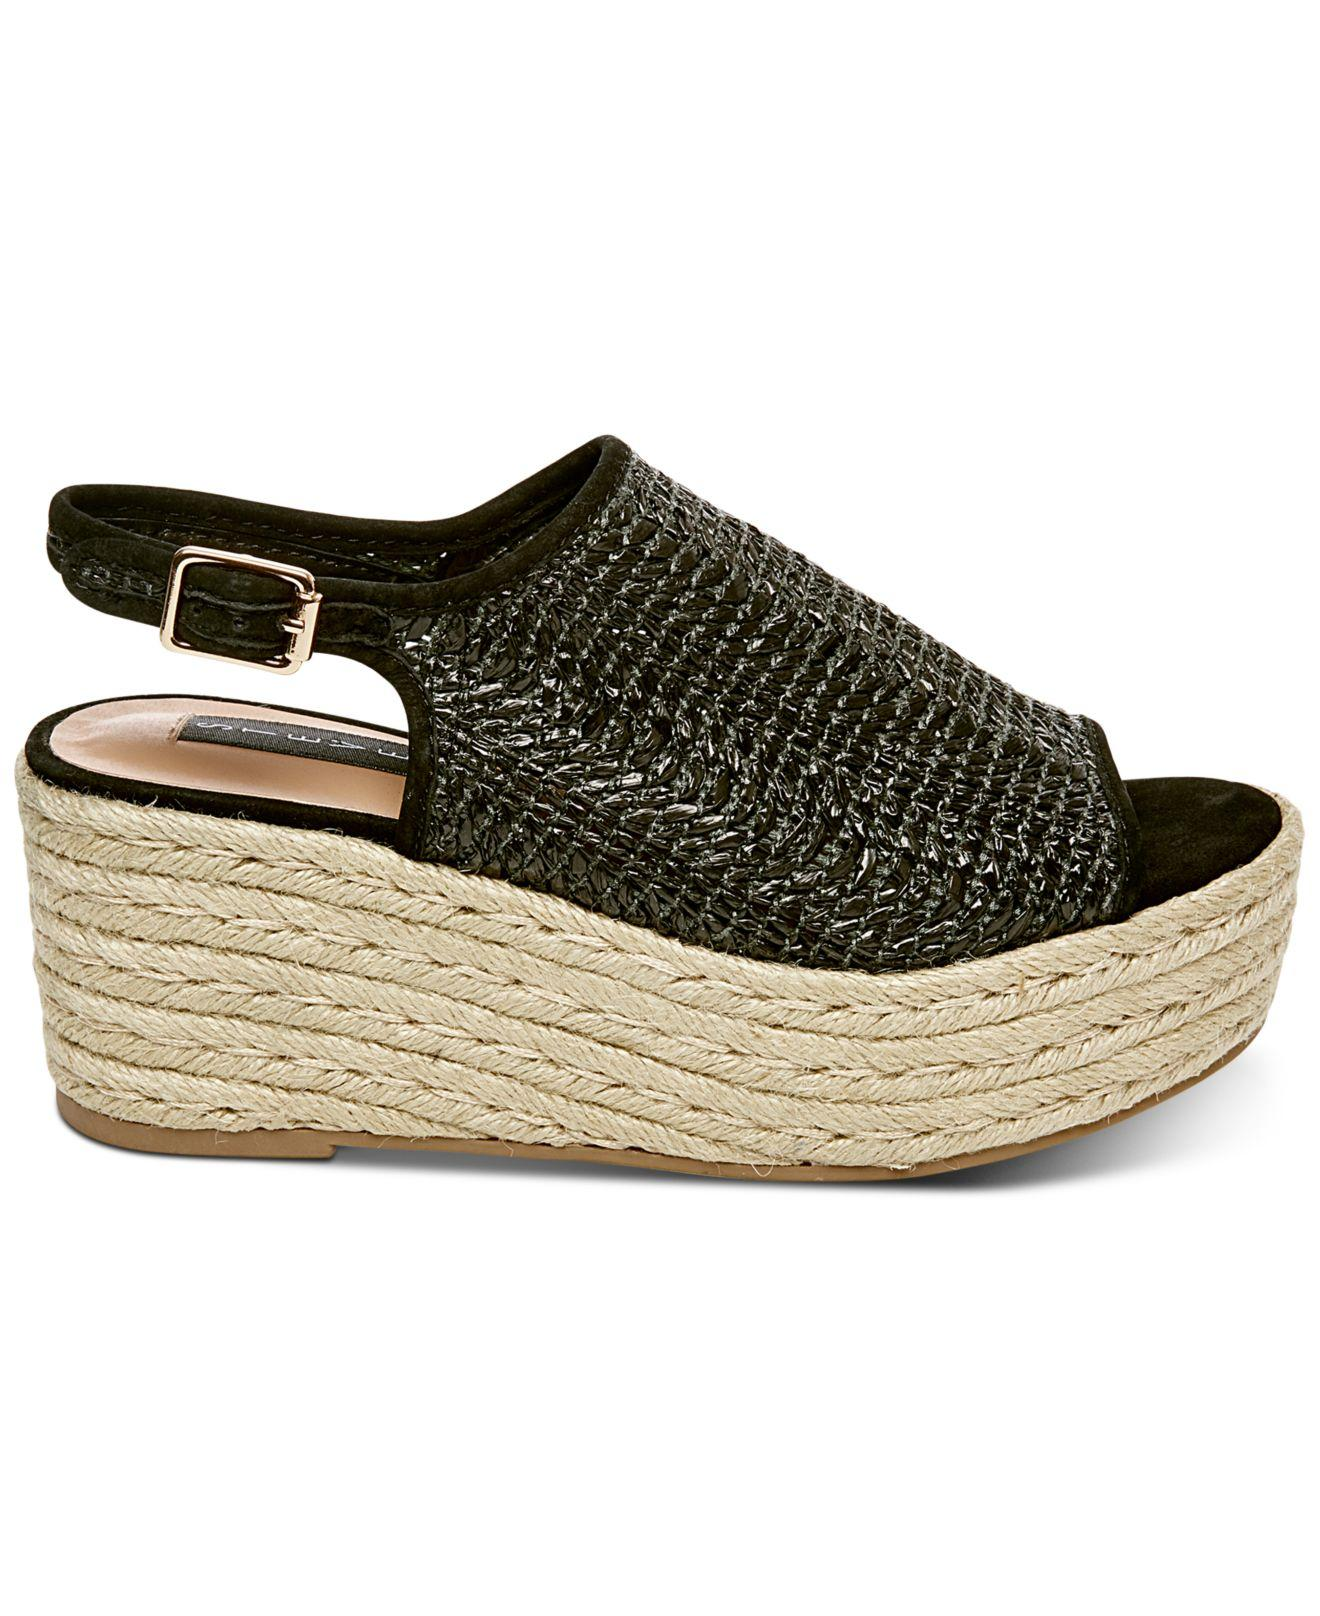 dabccb1827b Lyst - Steven by Steve Madden Courage Espadrille Wedge Sandals in Black -  Save 35%